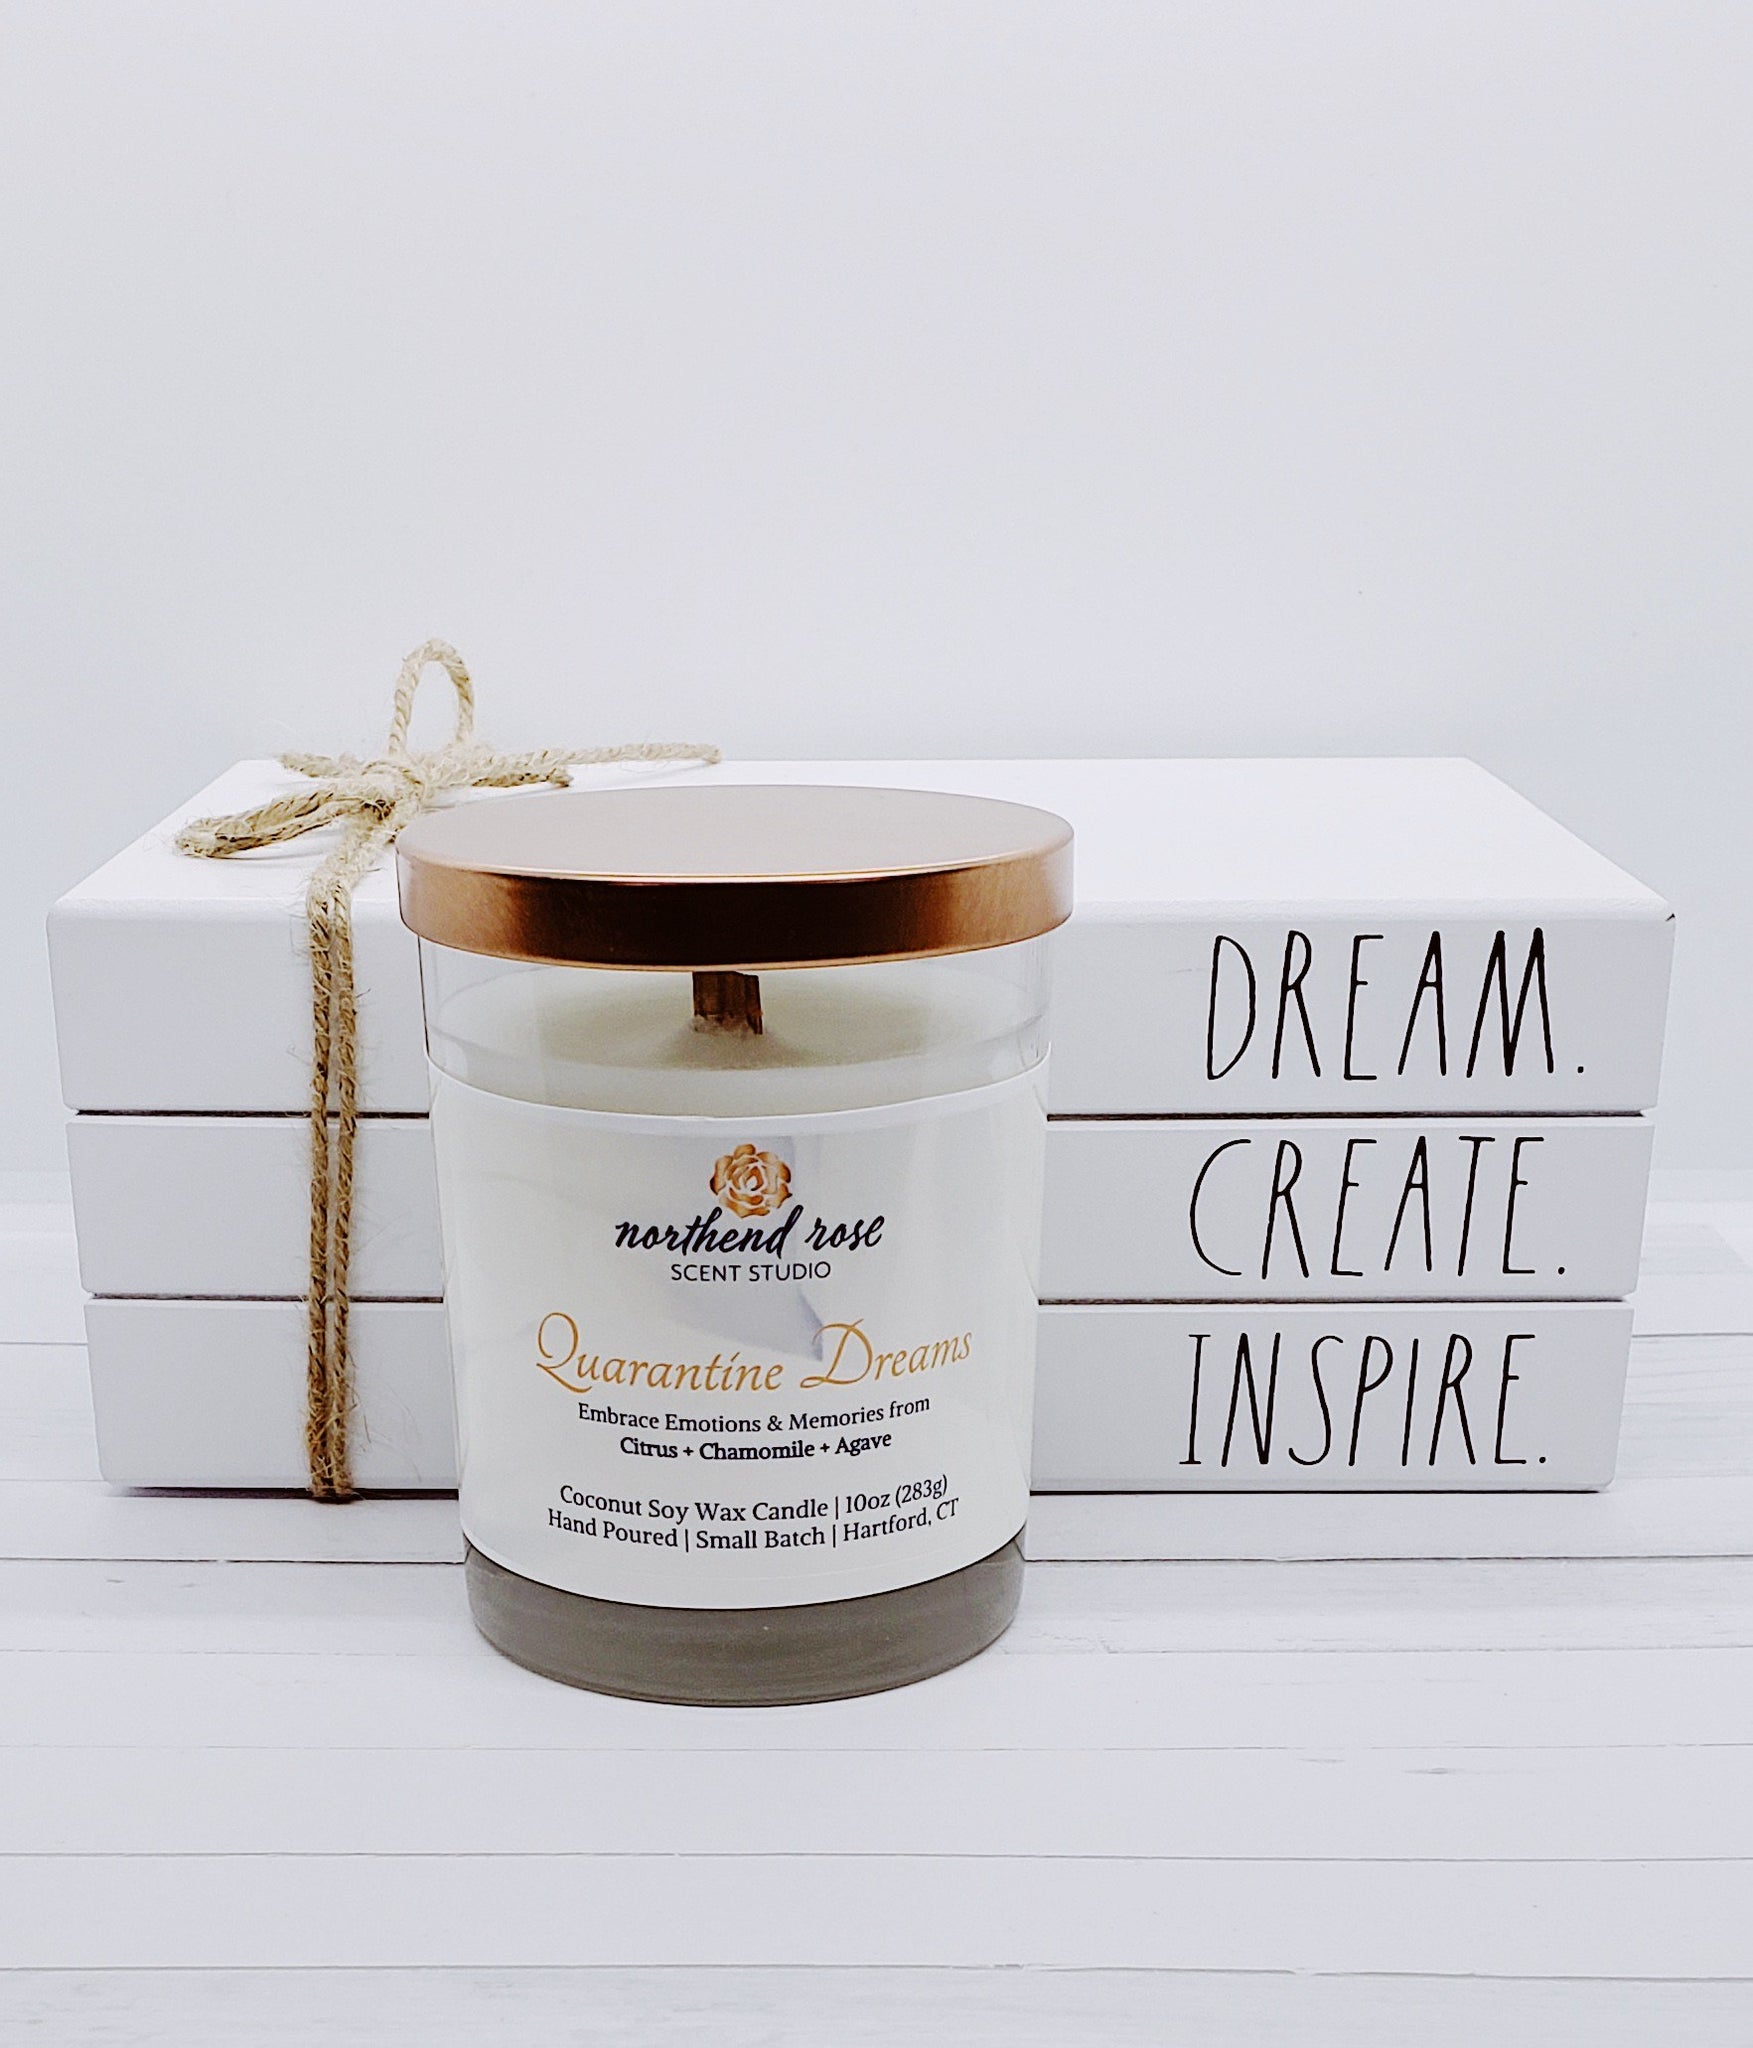 Quarantine Dreams 10oz Coconut Soy Candle | Core Collection